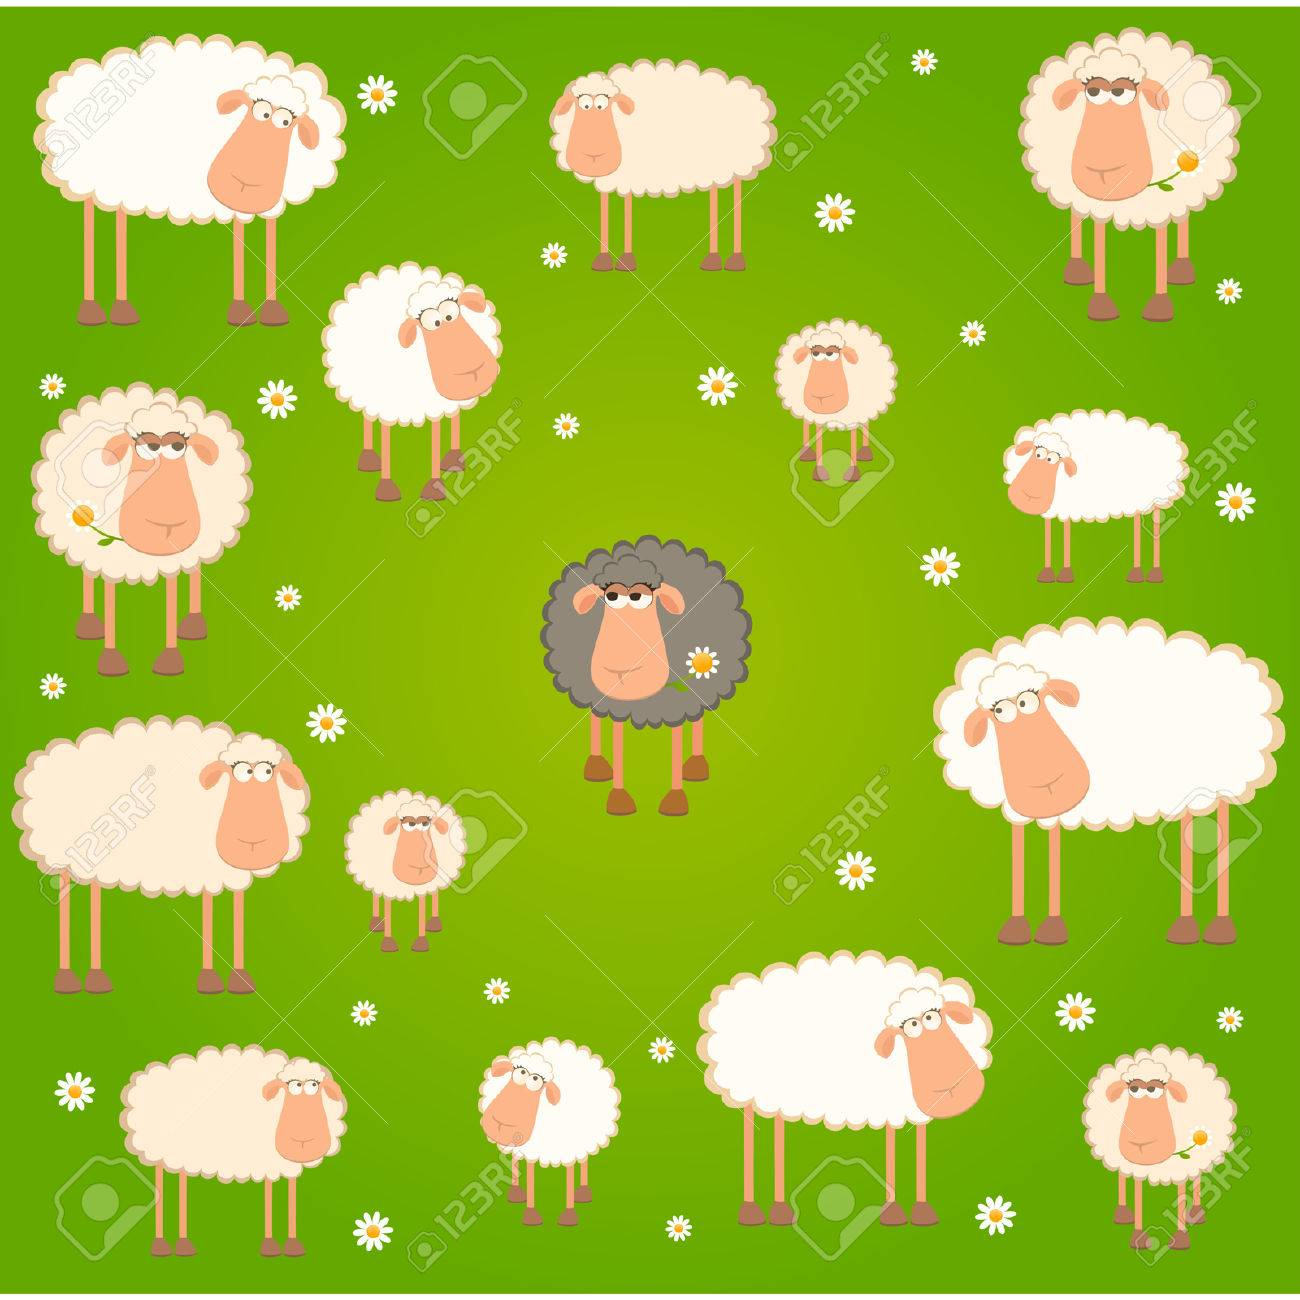 Landscape background with cartoon sheep Stock Vector - 8517248